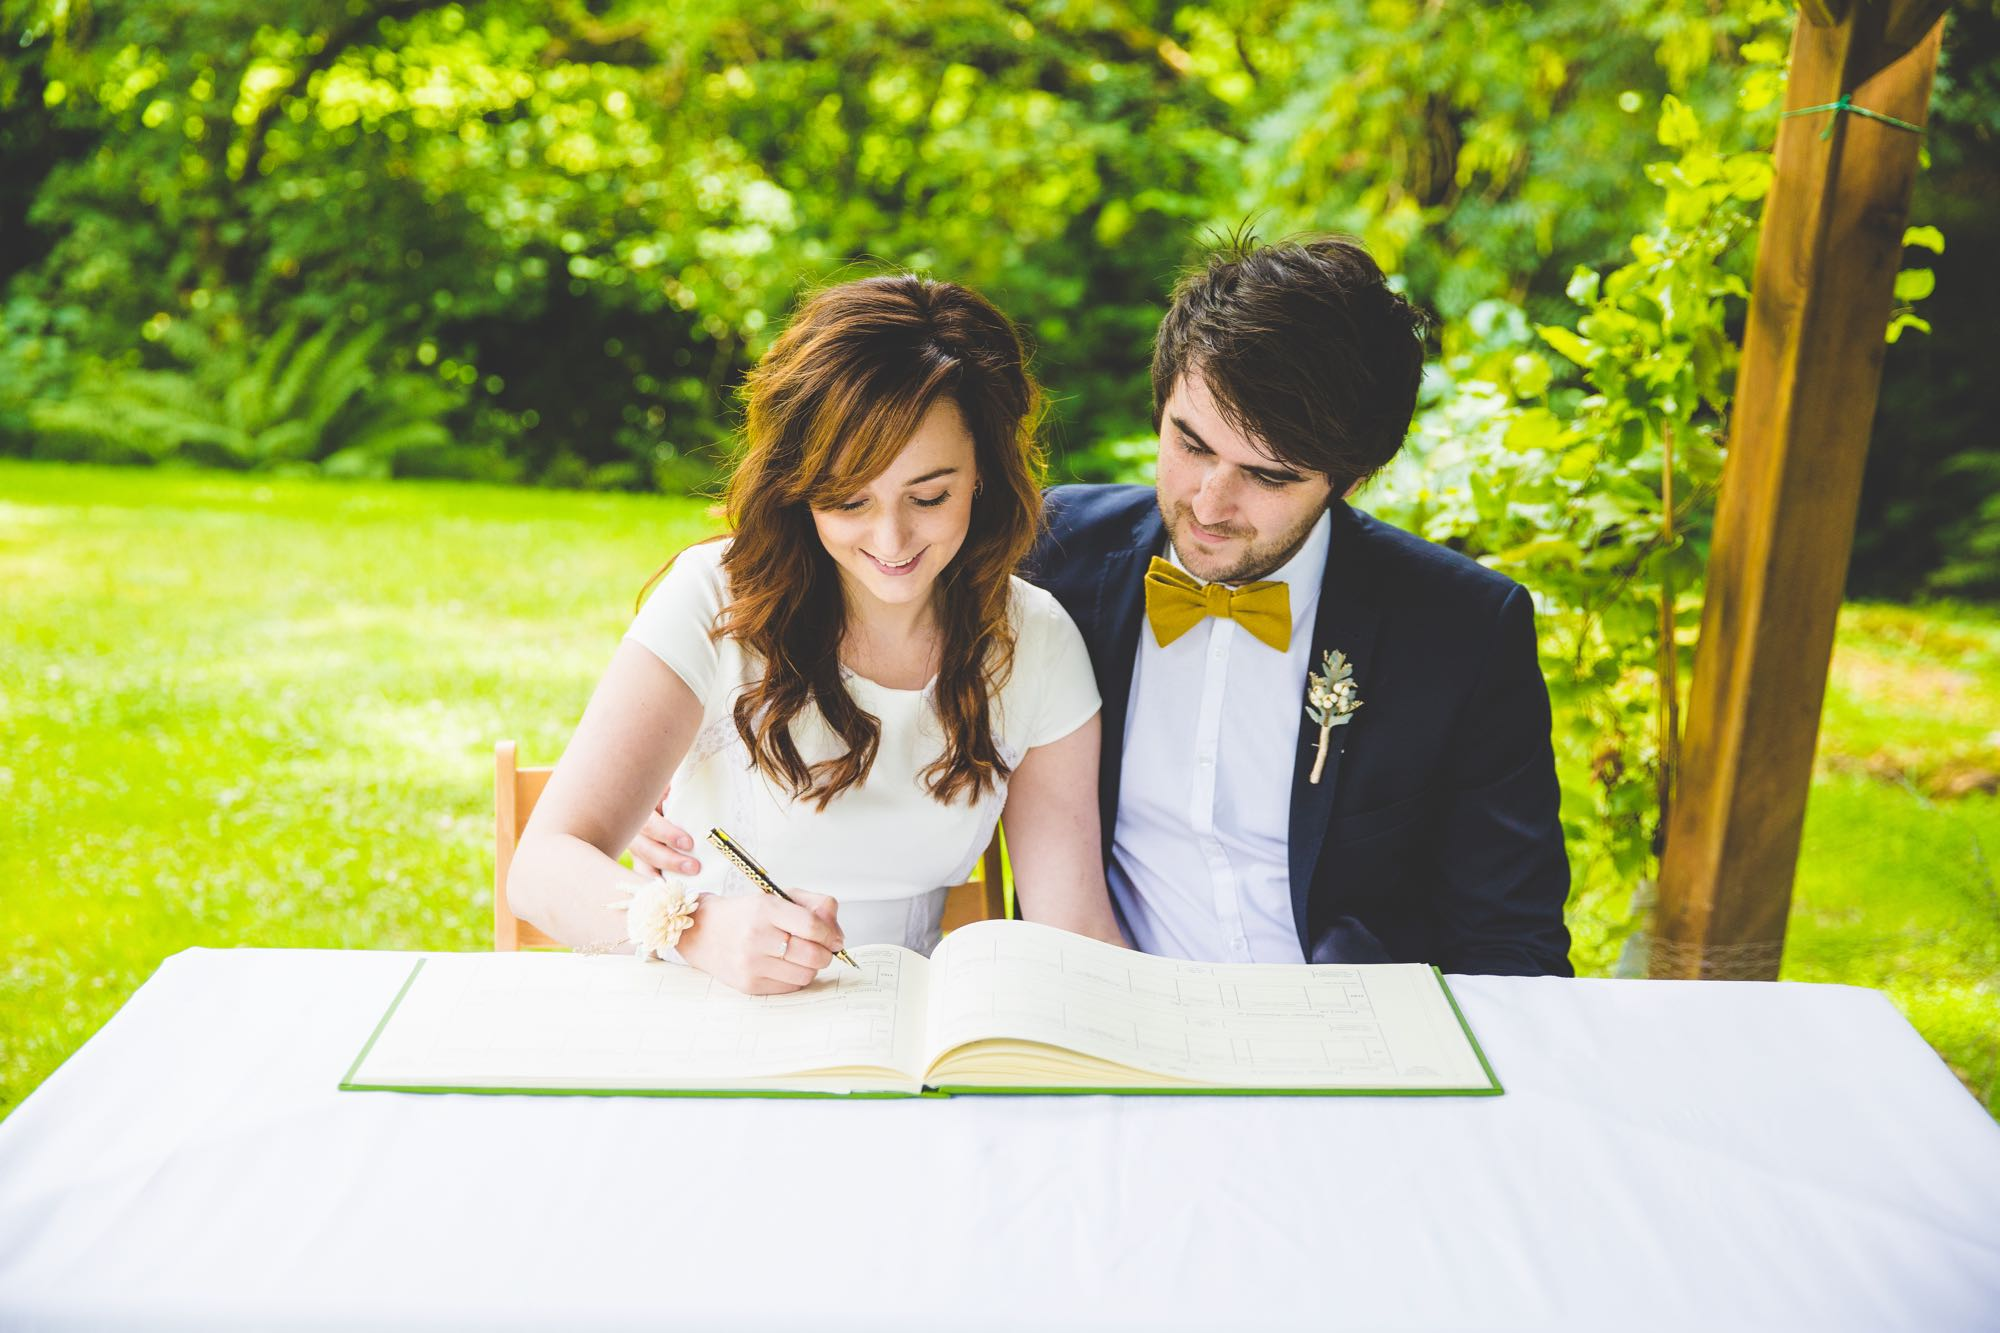 This image shows an elopement couple signing the register. The couple are seted at a white clothed table. In front of them is the open register. The bride sits on the left and the groom on the right. They are both looking at the book and the bride has a pen in her right hand. The groom has his arm around the bride's waist. The bride is wearing a cap-sleeved, white dress and has a flower on her wrist. She has long, dark hair that she's wearing loose. The groom is wearing a dark blue jacket, a white shirt and a yellow bowtie. He has dark hair and a beard. In the background there are lots of green trees, shrubs and grass. On the right you can see one of the oak posts that form part of the Lake Arbour.